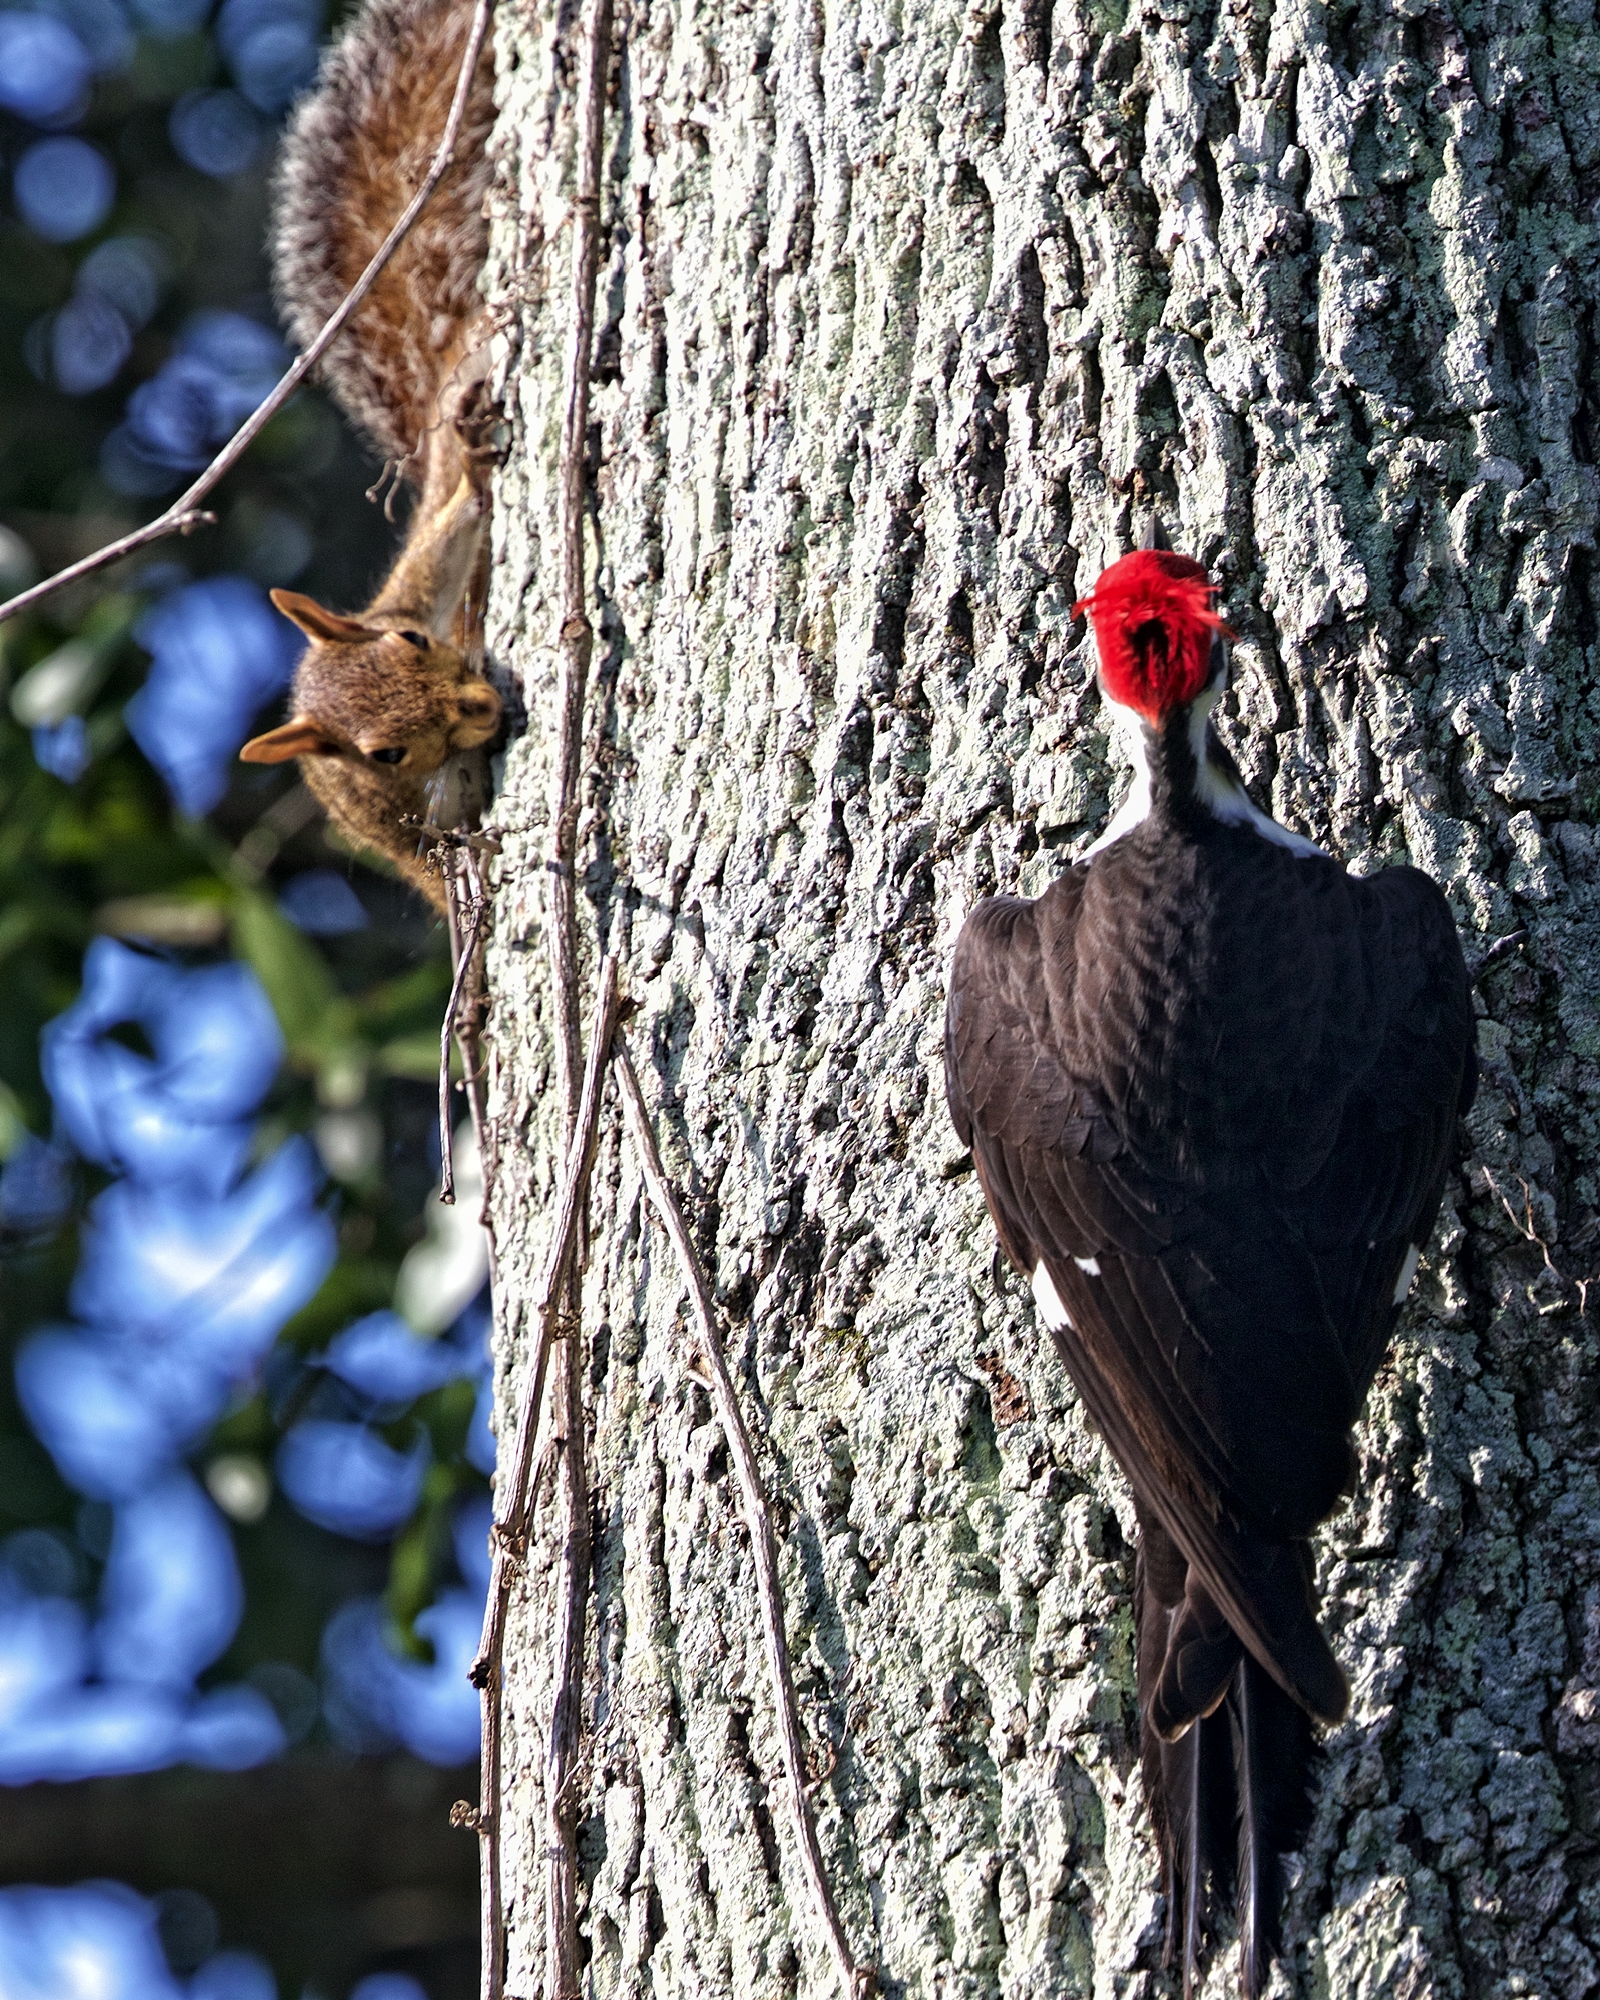 Knock Knock...who's there? Pecker....Piliated Woodpecker that is...who is making all that noise?